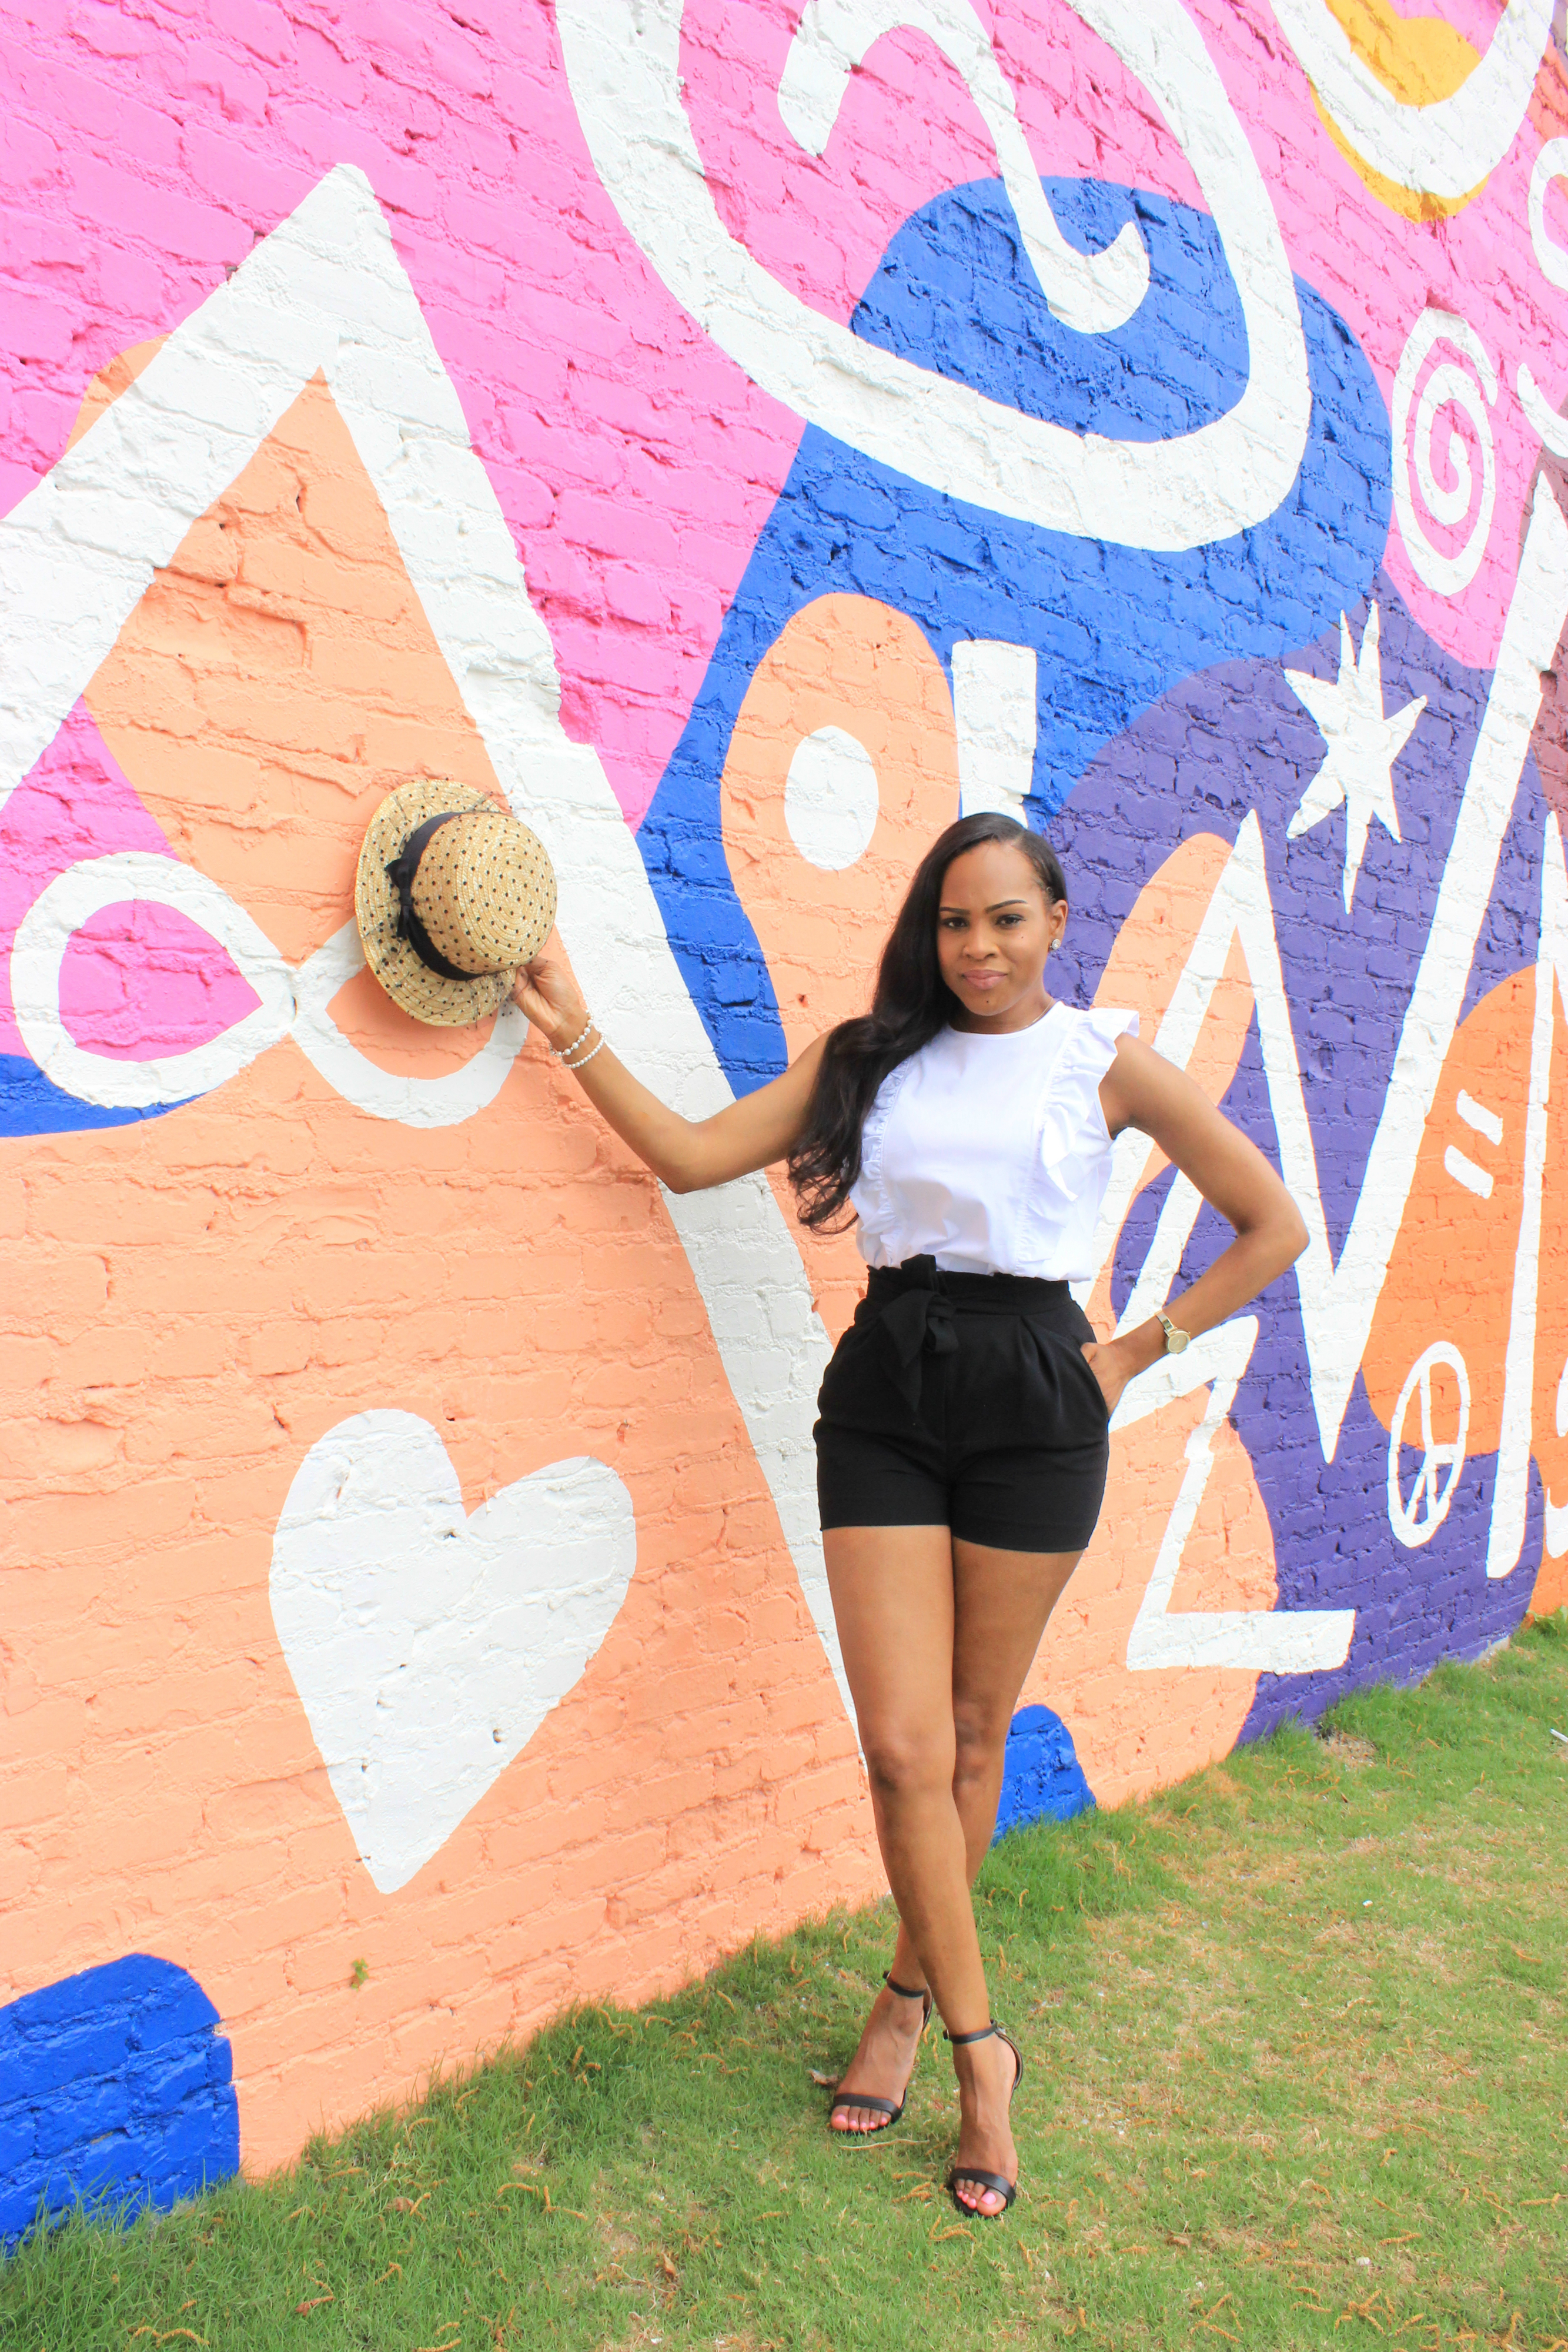 style-files-Michael kors white ruffle sleeveless top-HM-tie-front-black-shorts-amazon- polka -dot straw-hat-justfab-black-ankle-strap-sandals-birmingham-top-bloggers-oohlalablog-17